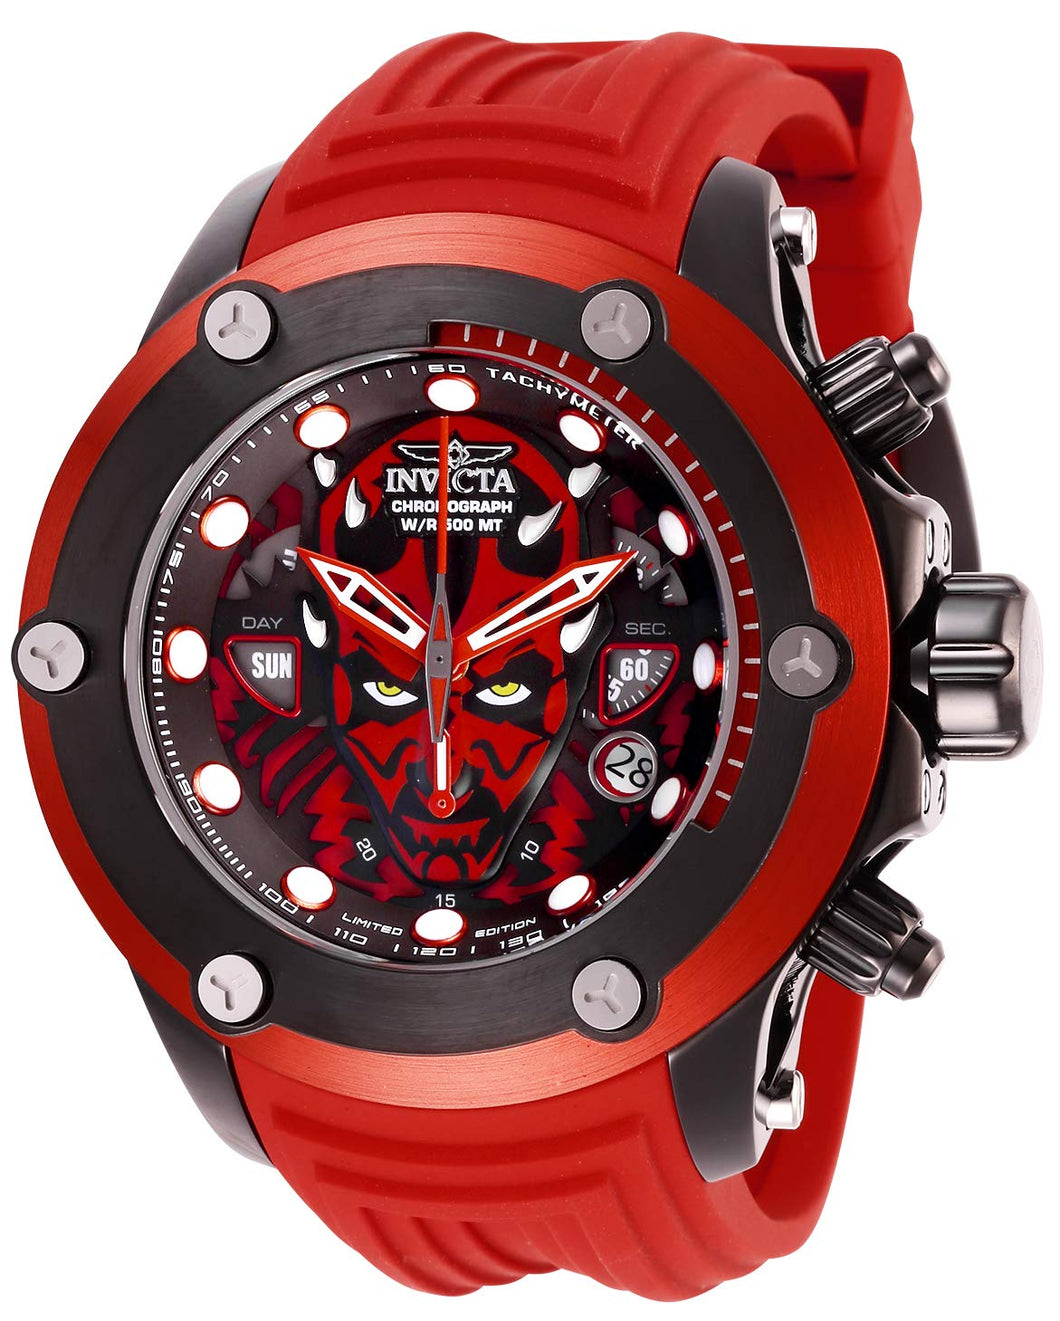 Invicta Men's Star Wars Stainless Steel Quartz Watch with Silicone Strap, red, 26 (Model: 26717)